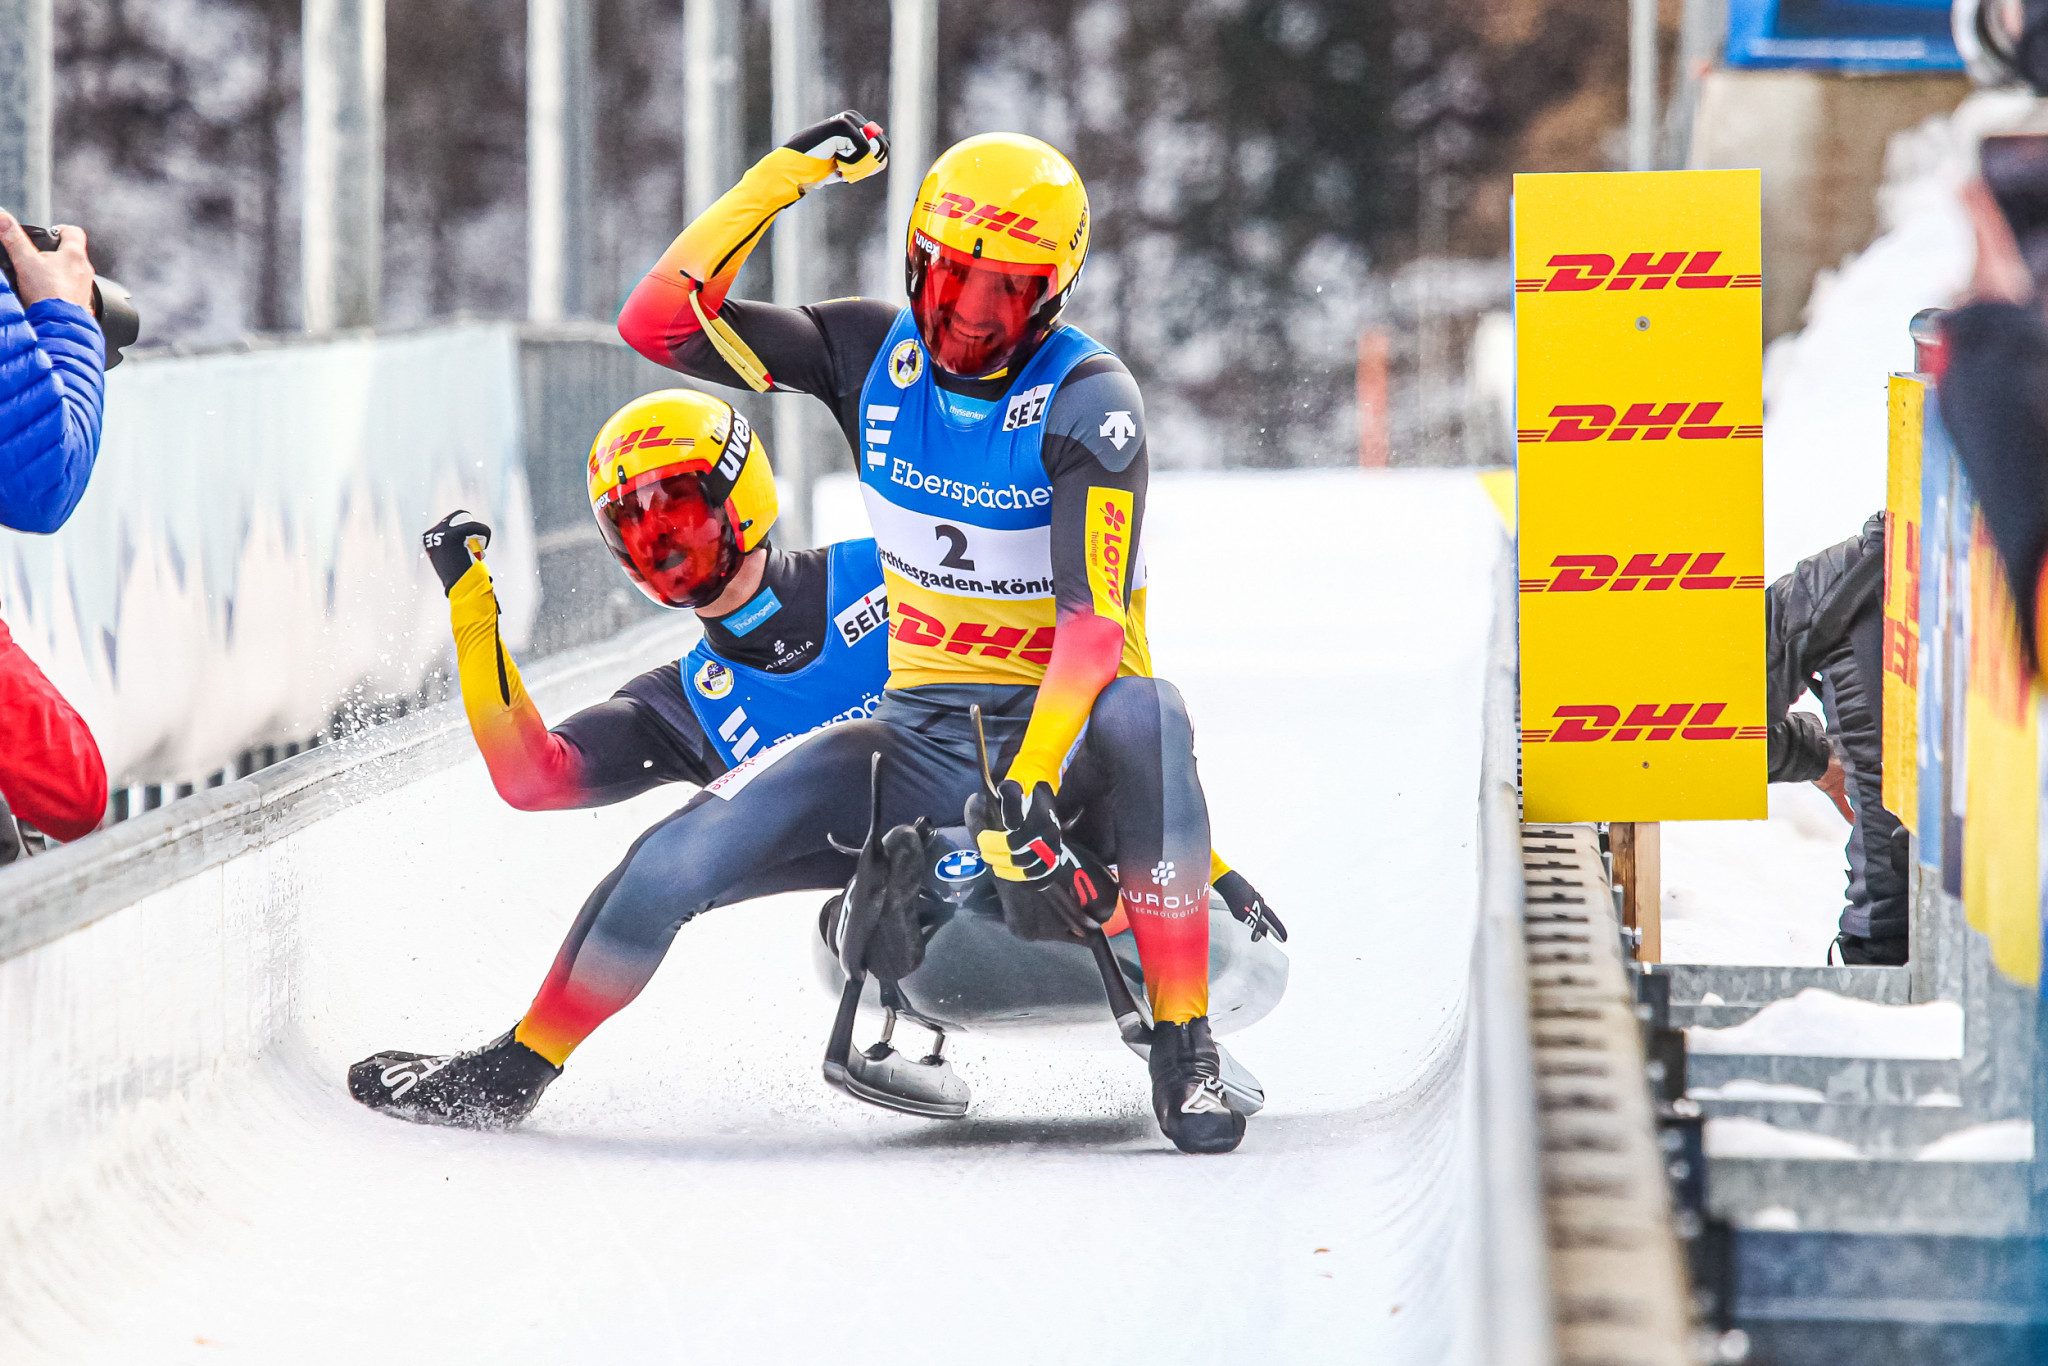 German pair Toni Eggert and Sascha Benecken triumphed in the doubles event at the Luge World Championships ©FIL